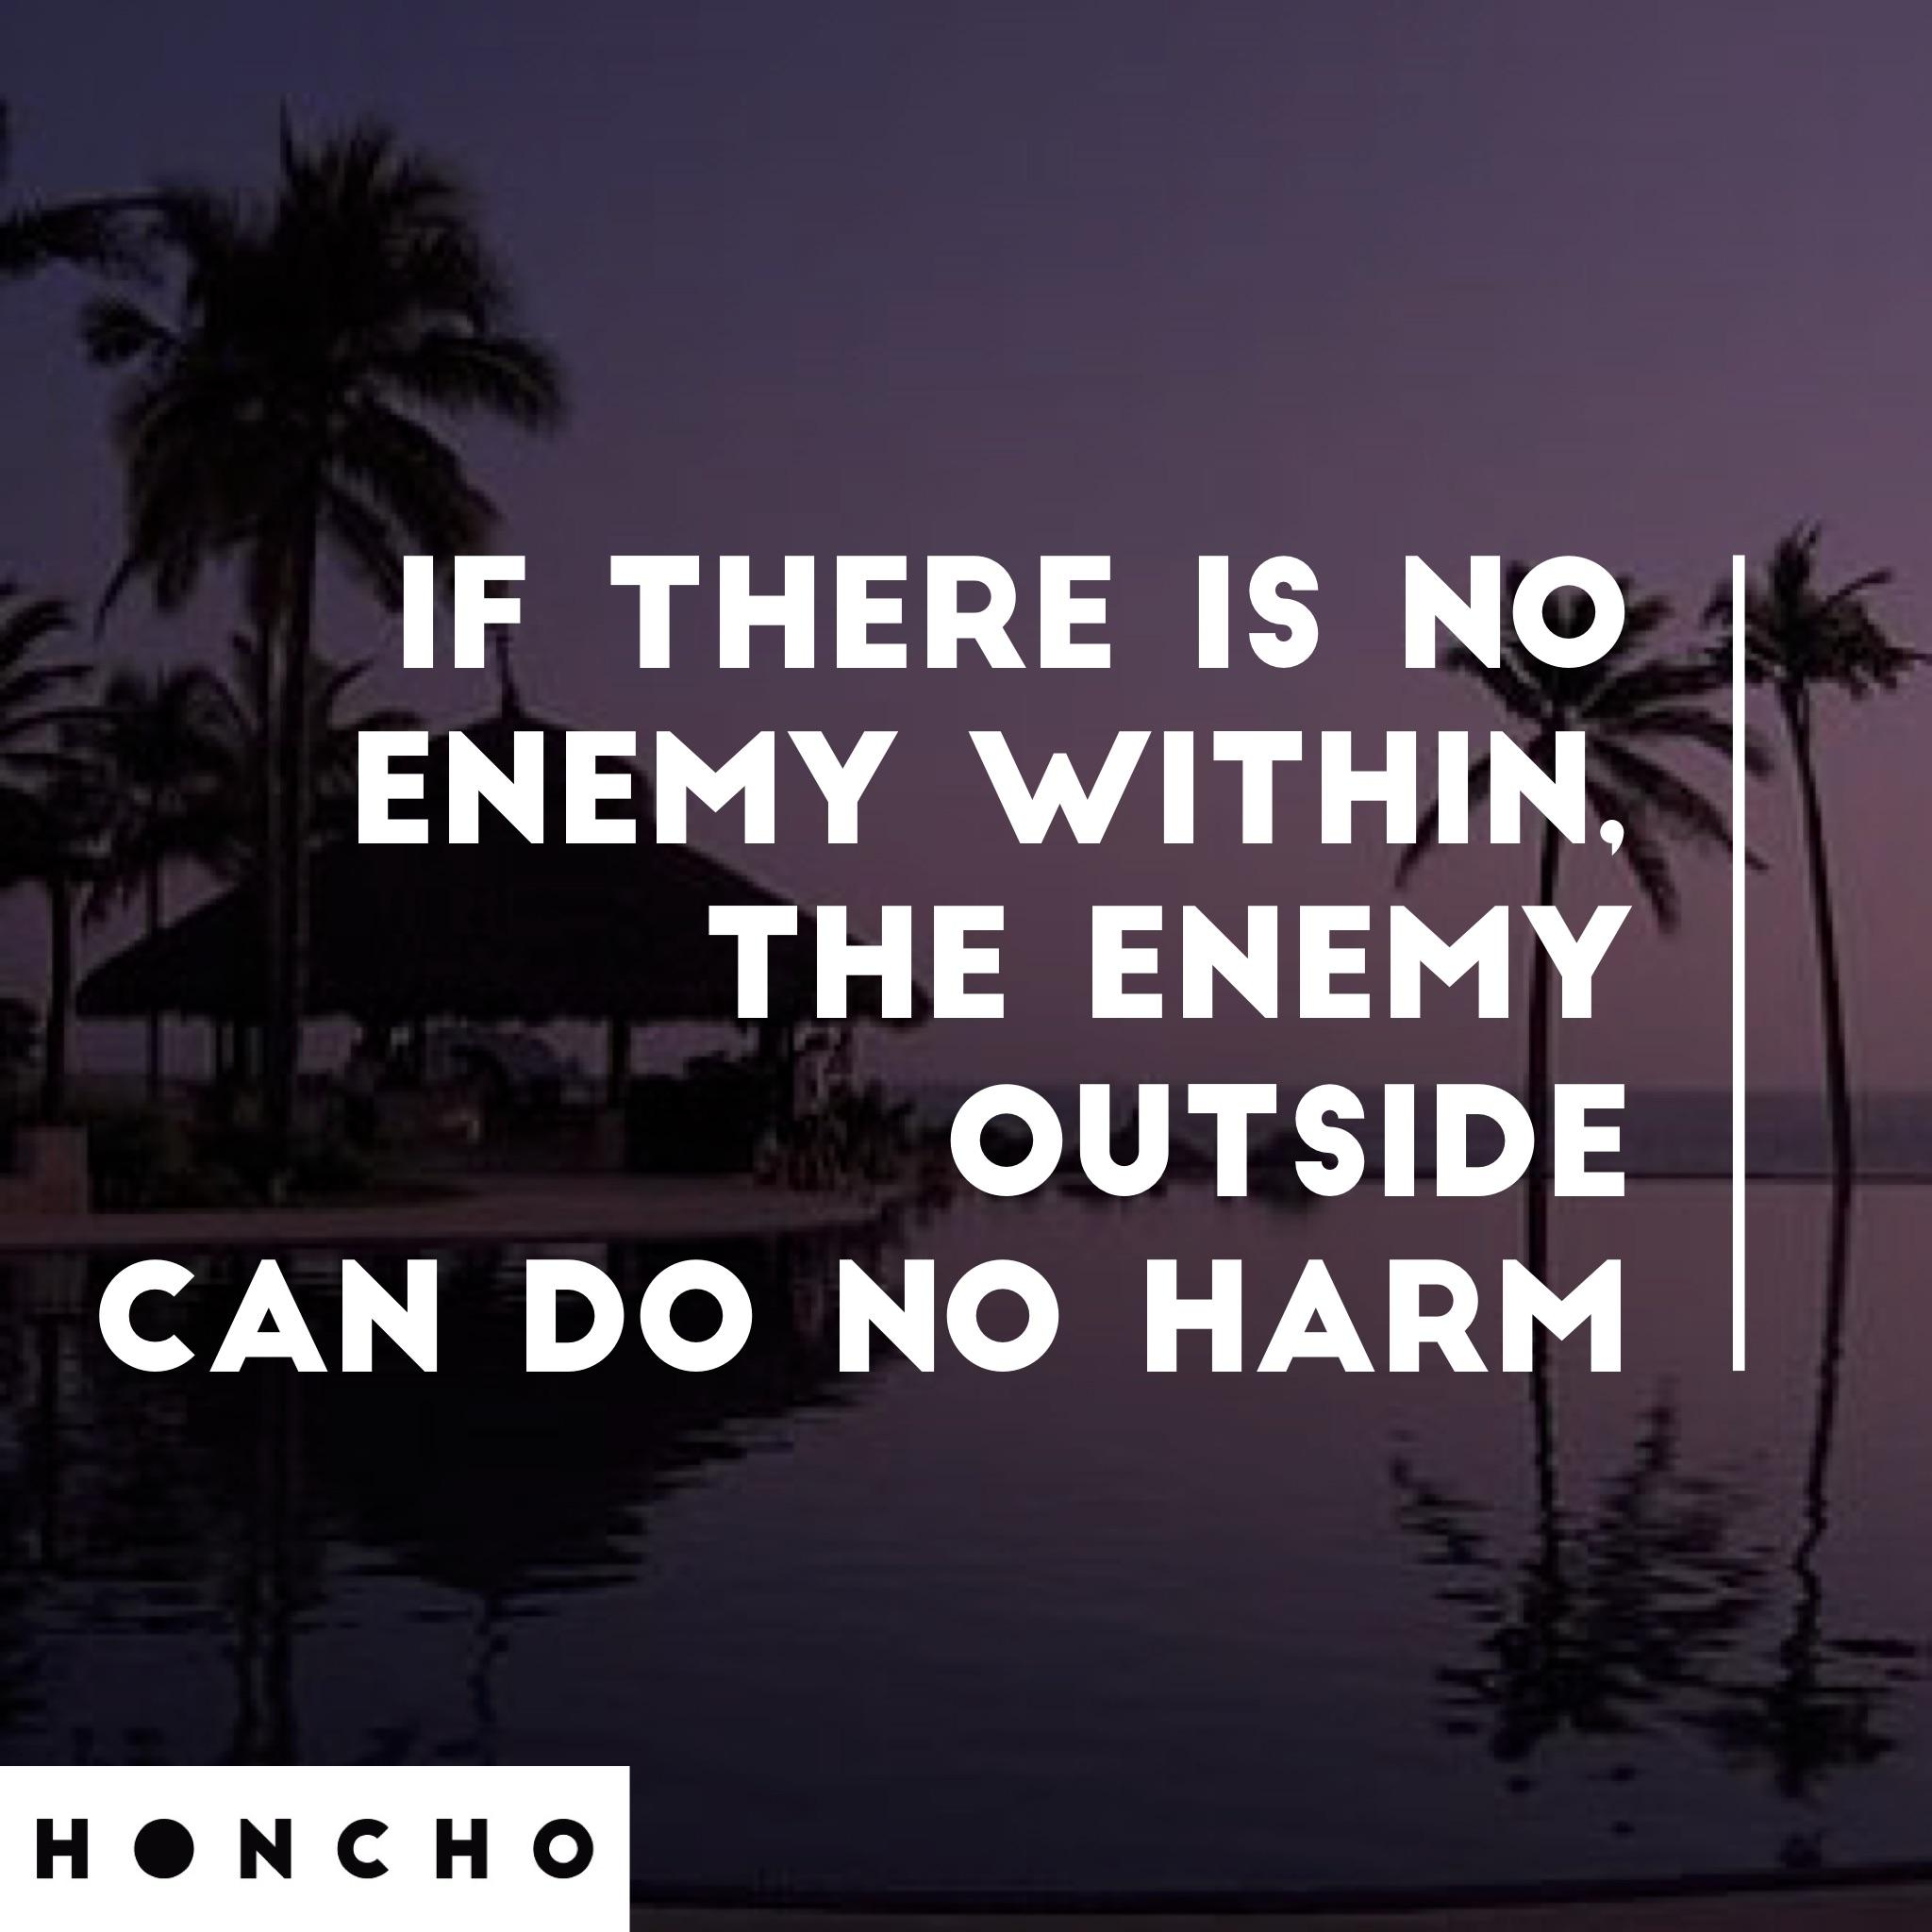 [image] Defeat the enemy within